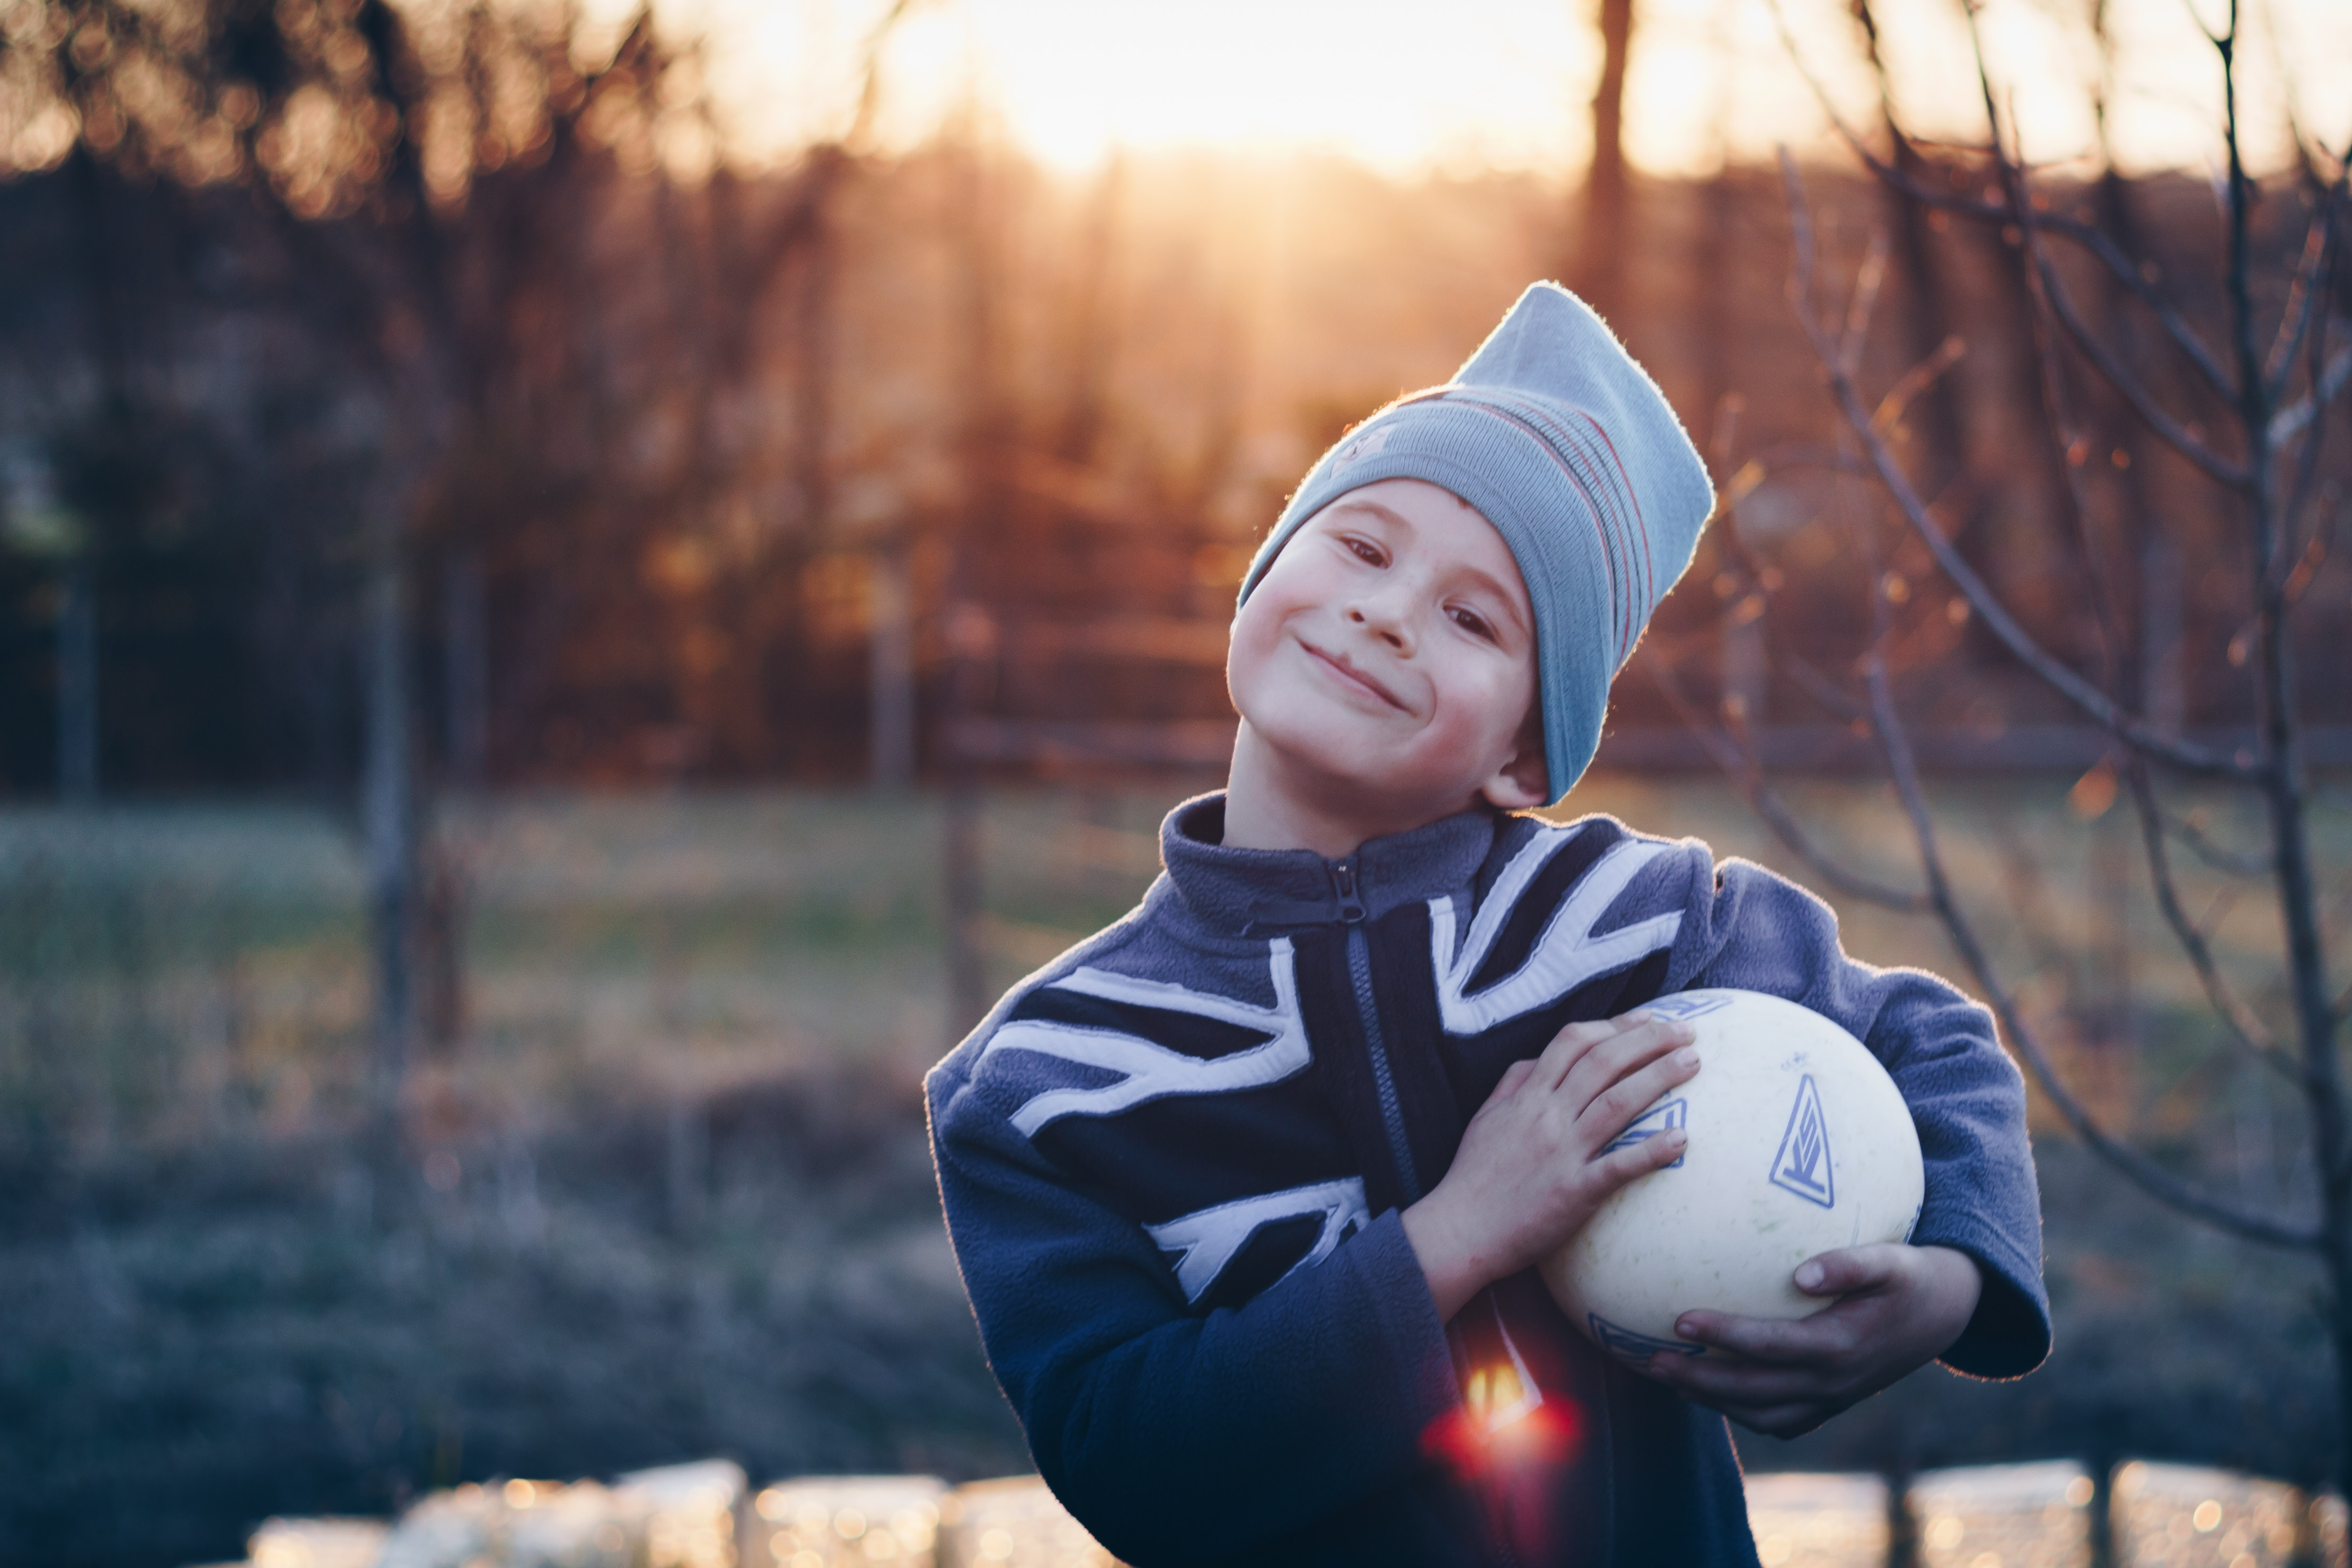 Selective Focus Photography of Boy Wearing Blue United Kingdom Print Zip-up Jacket Carrying White Ball, Person, Young, Wear, Trees, HQ Photo